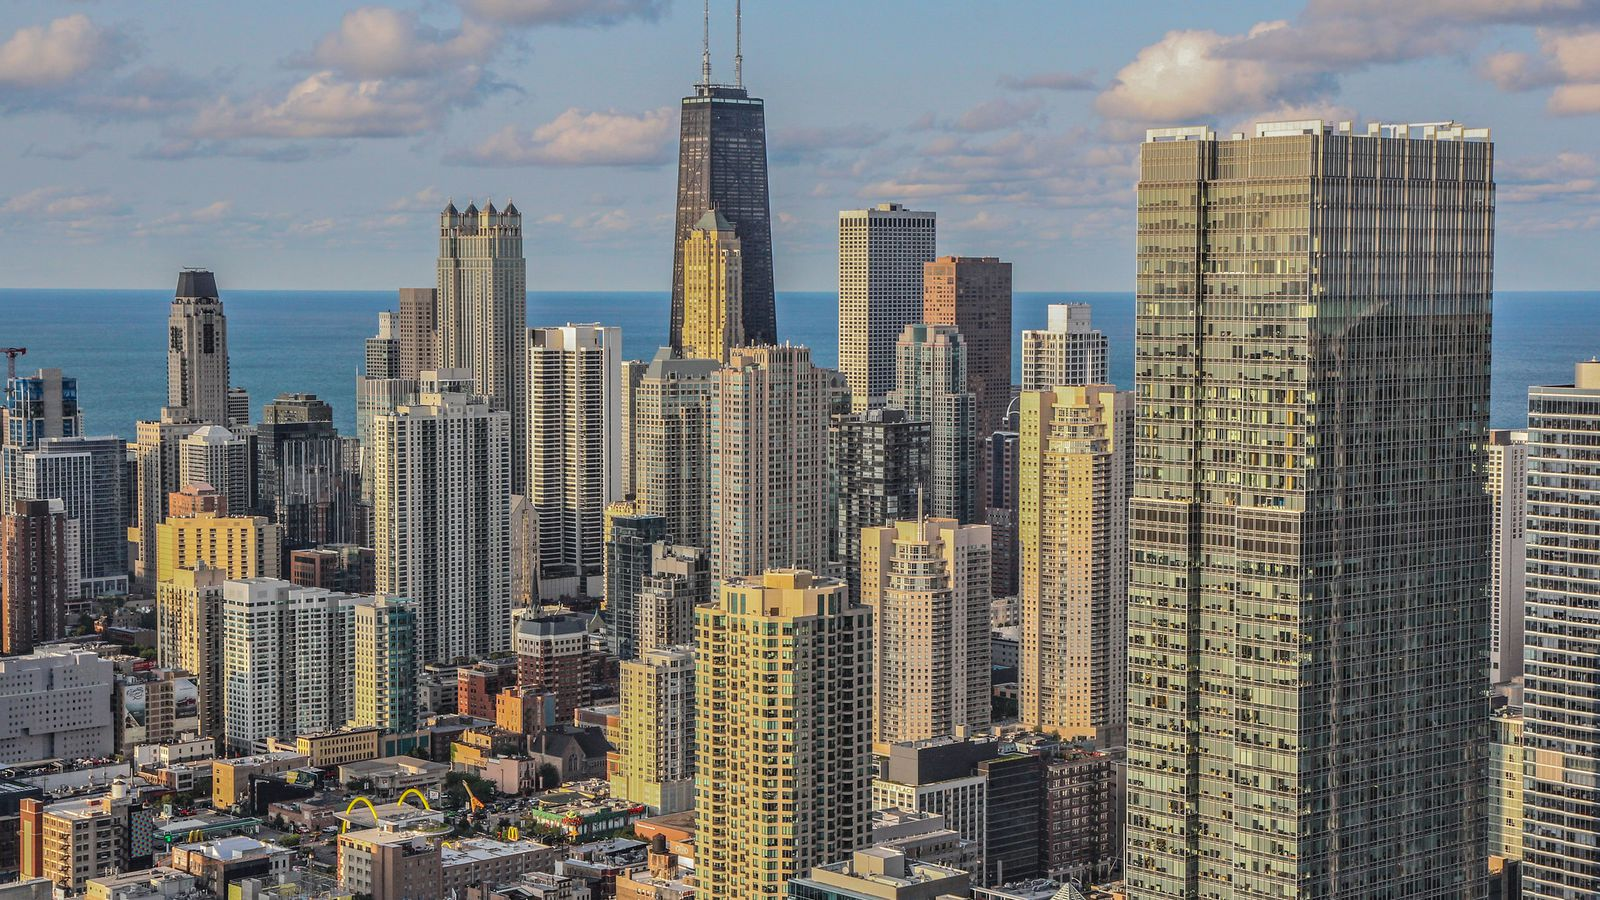 chicago 39 s 54 high rises under construction mapped curbed chicago. Black Bedroom Furniture Sets. Home Design Ideas